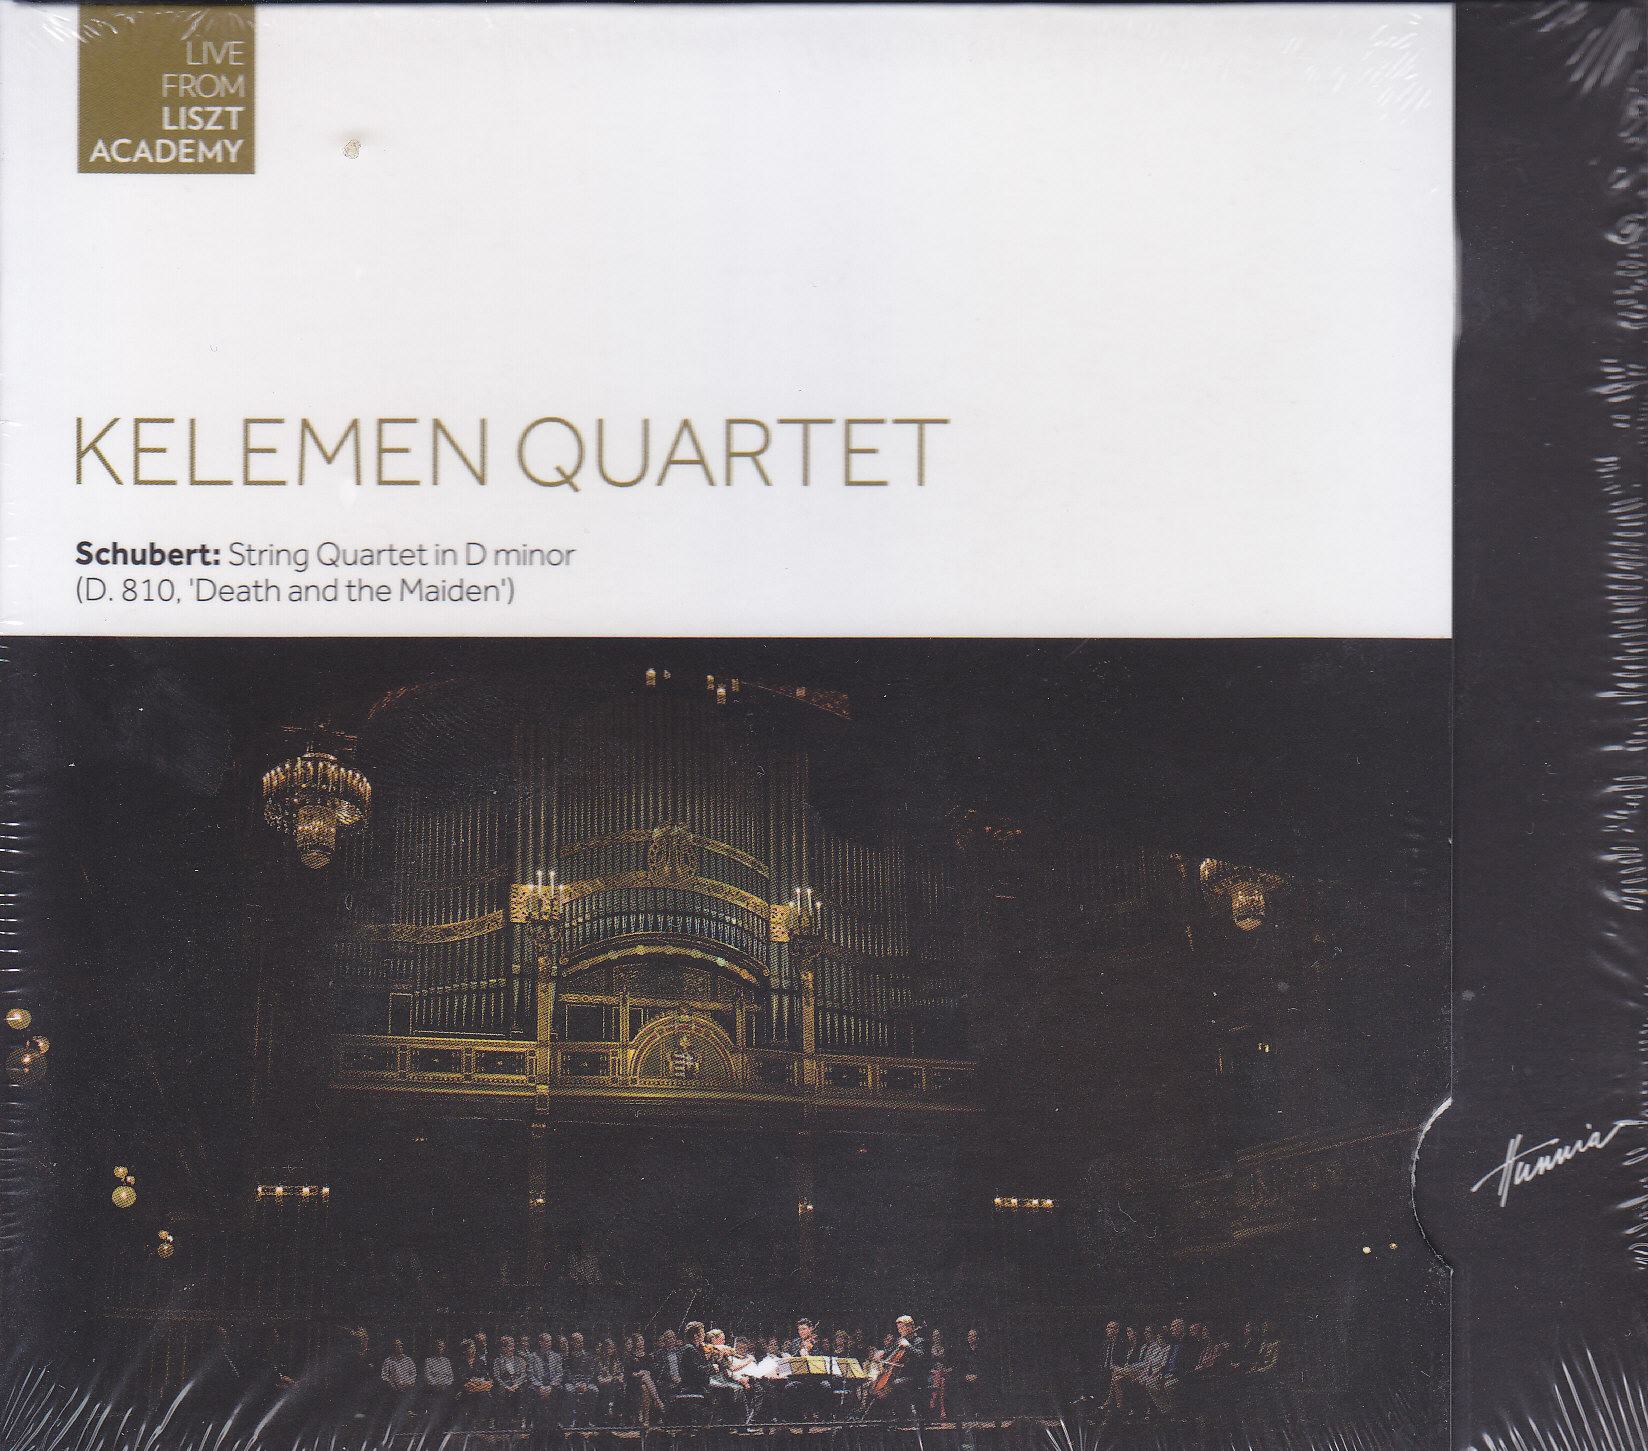 Kelemen Quartet - Schubert: String Quartet in D Minor (D.810. Death and the Maiden)